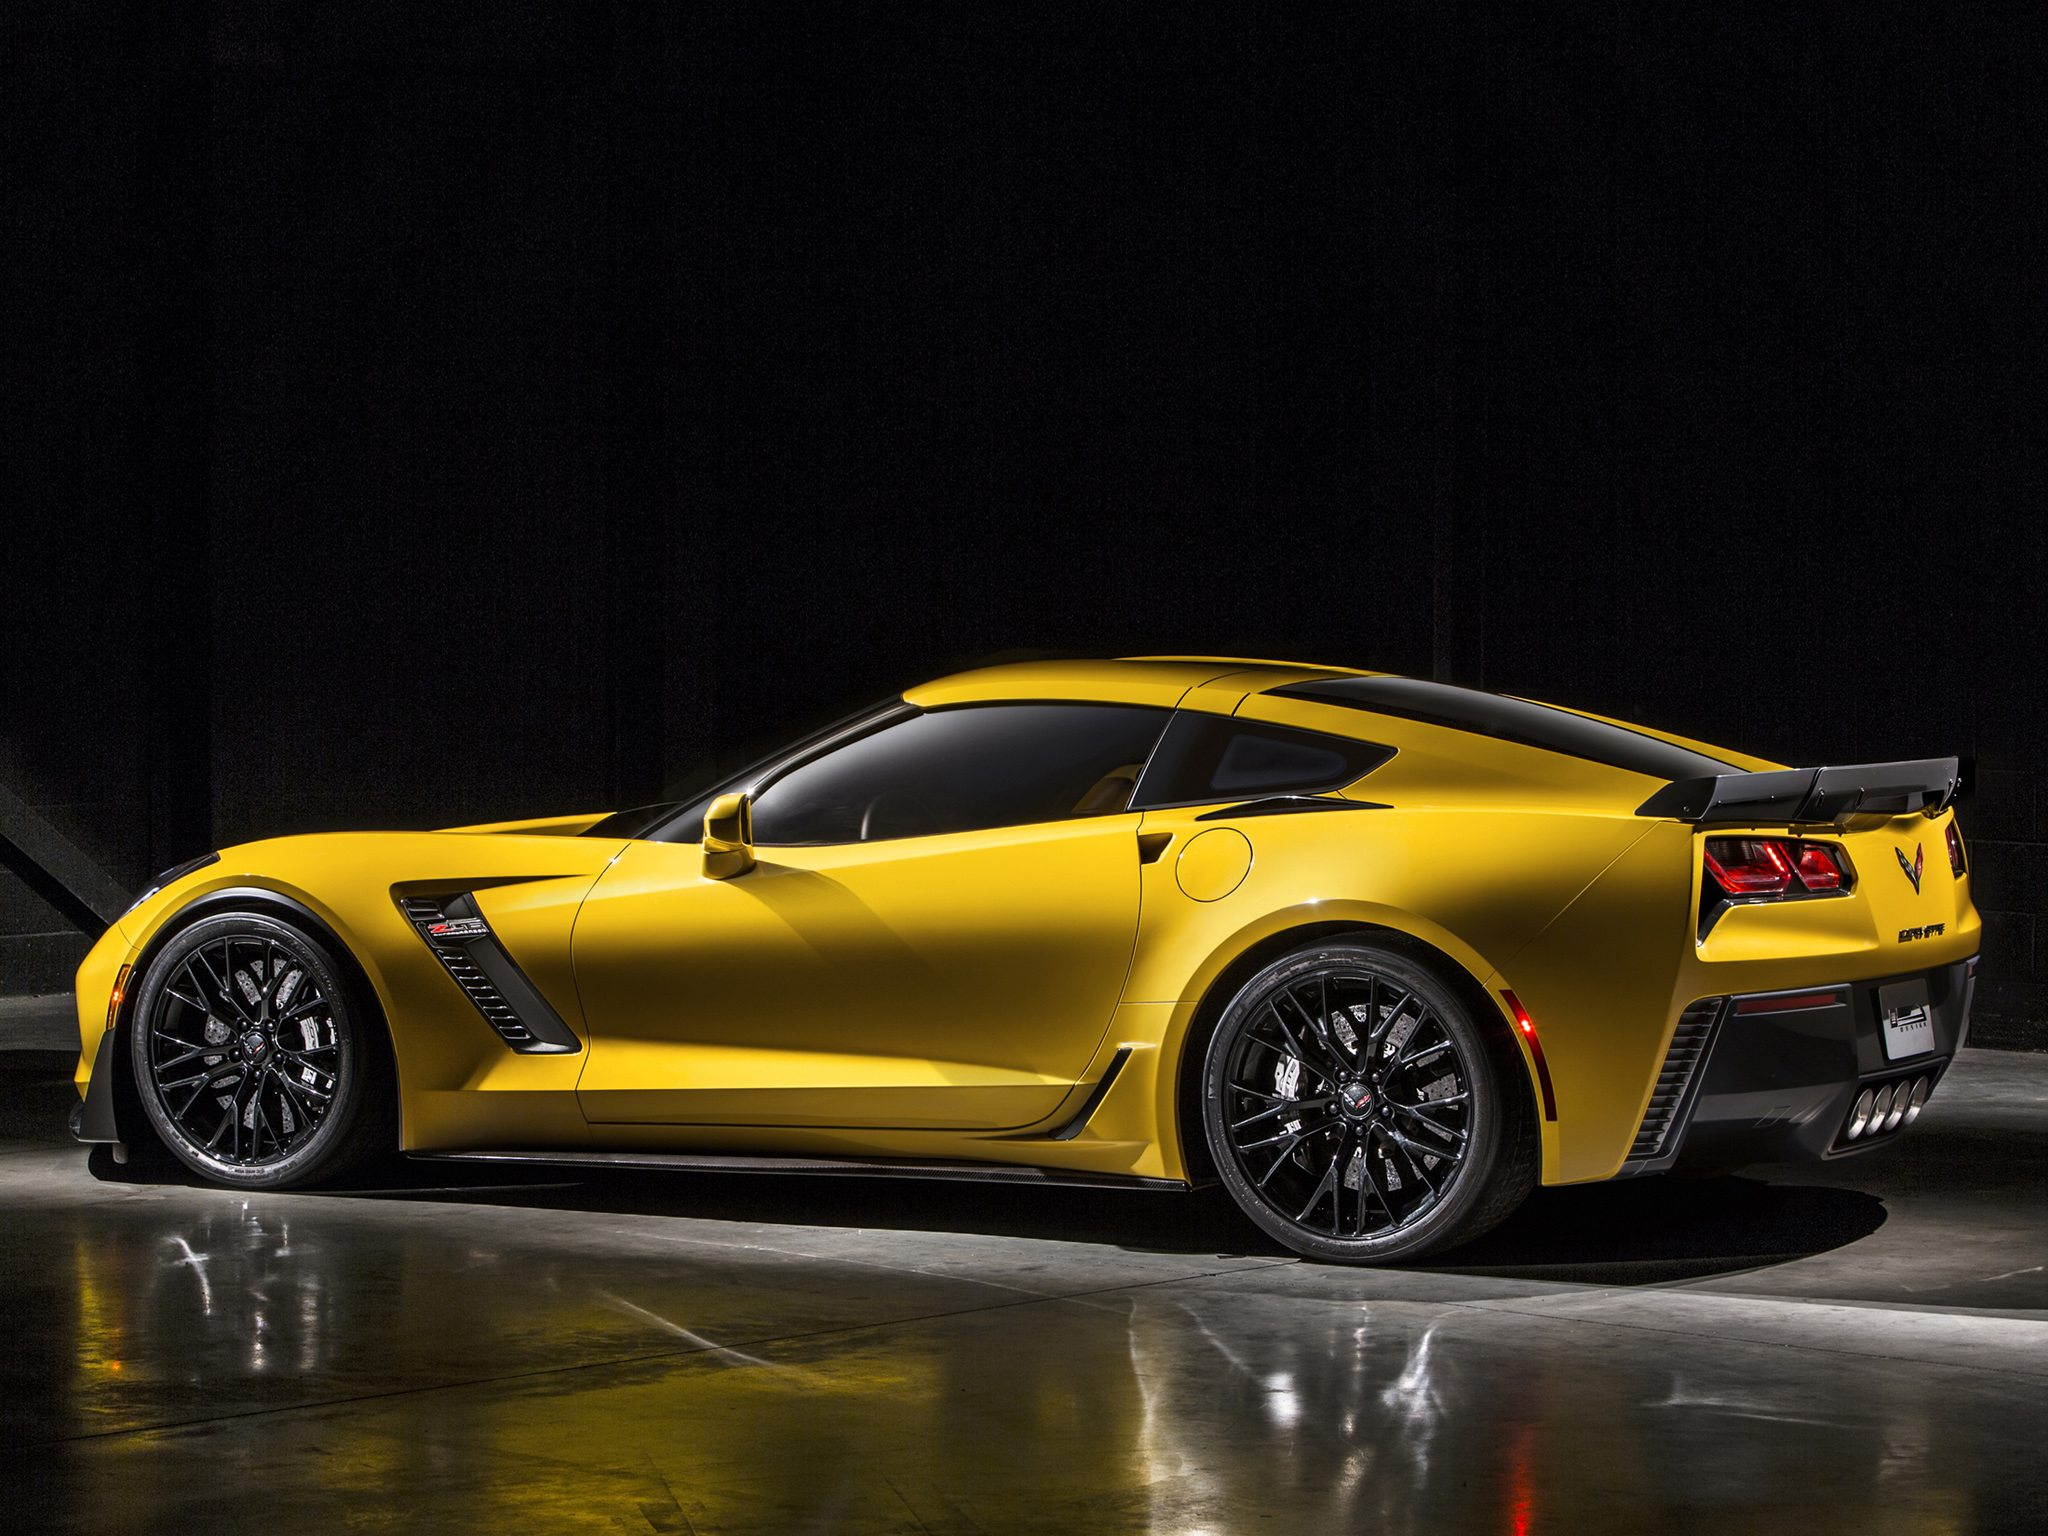 2015-chevrolet-corvette-stingray-z06-c7-supercar-muscle-9-wallpaper-1 Cool Review About Corvettes for Sale In Md with Extraordinary Images Cars Review